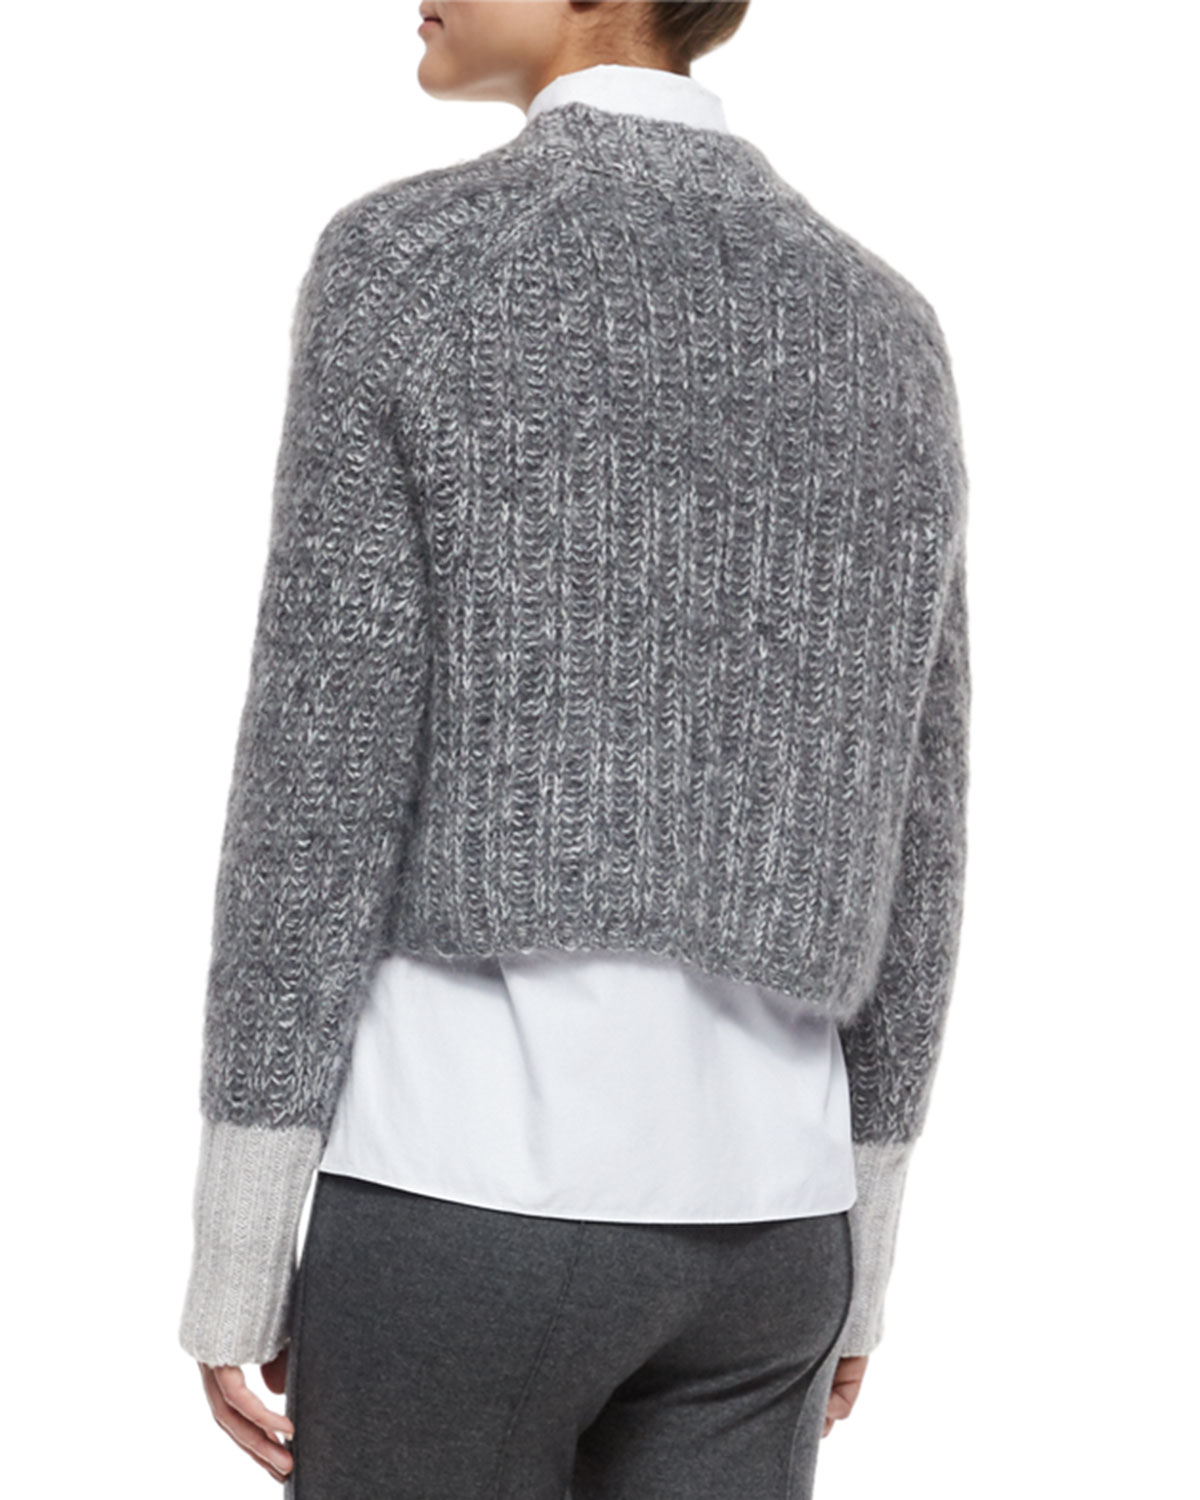 Rag & bone Makenna Cropped Knit Sweater in Gray | Lyst